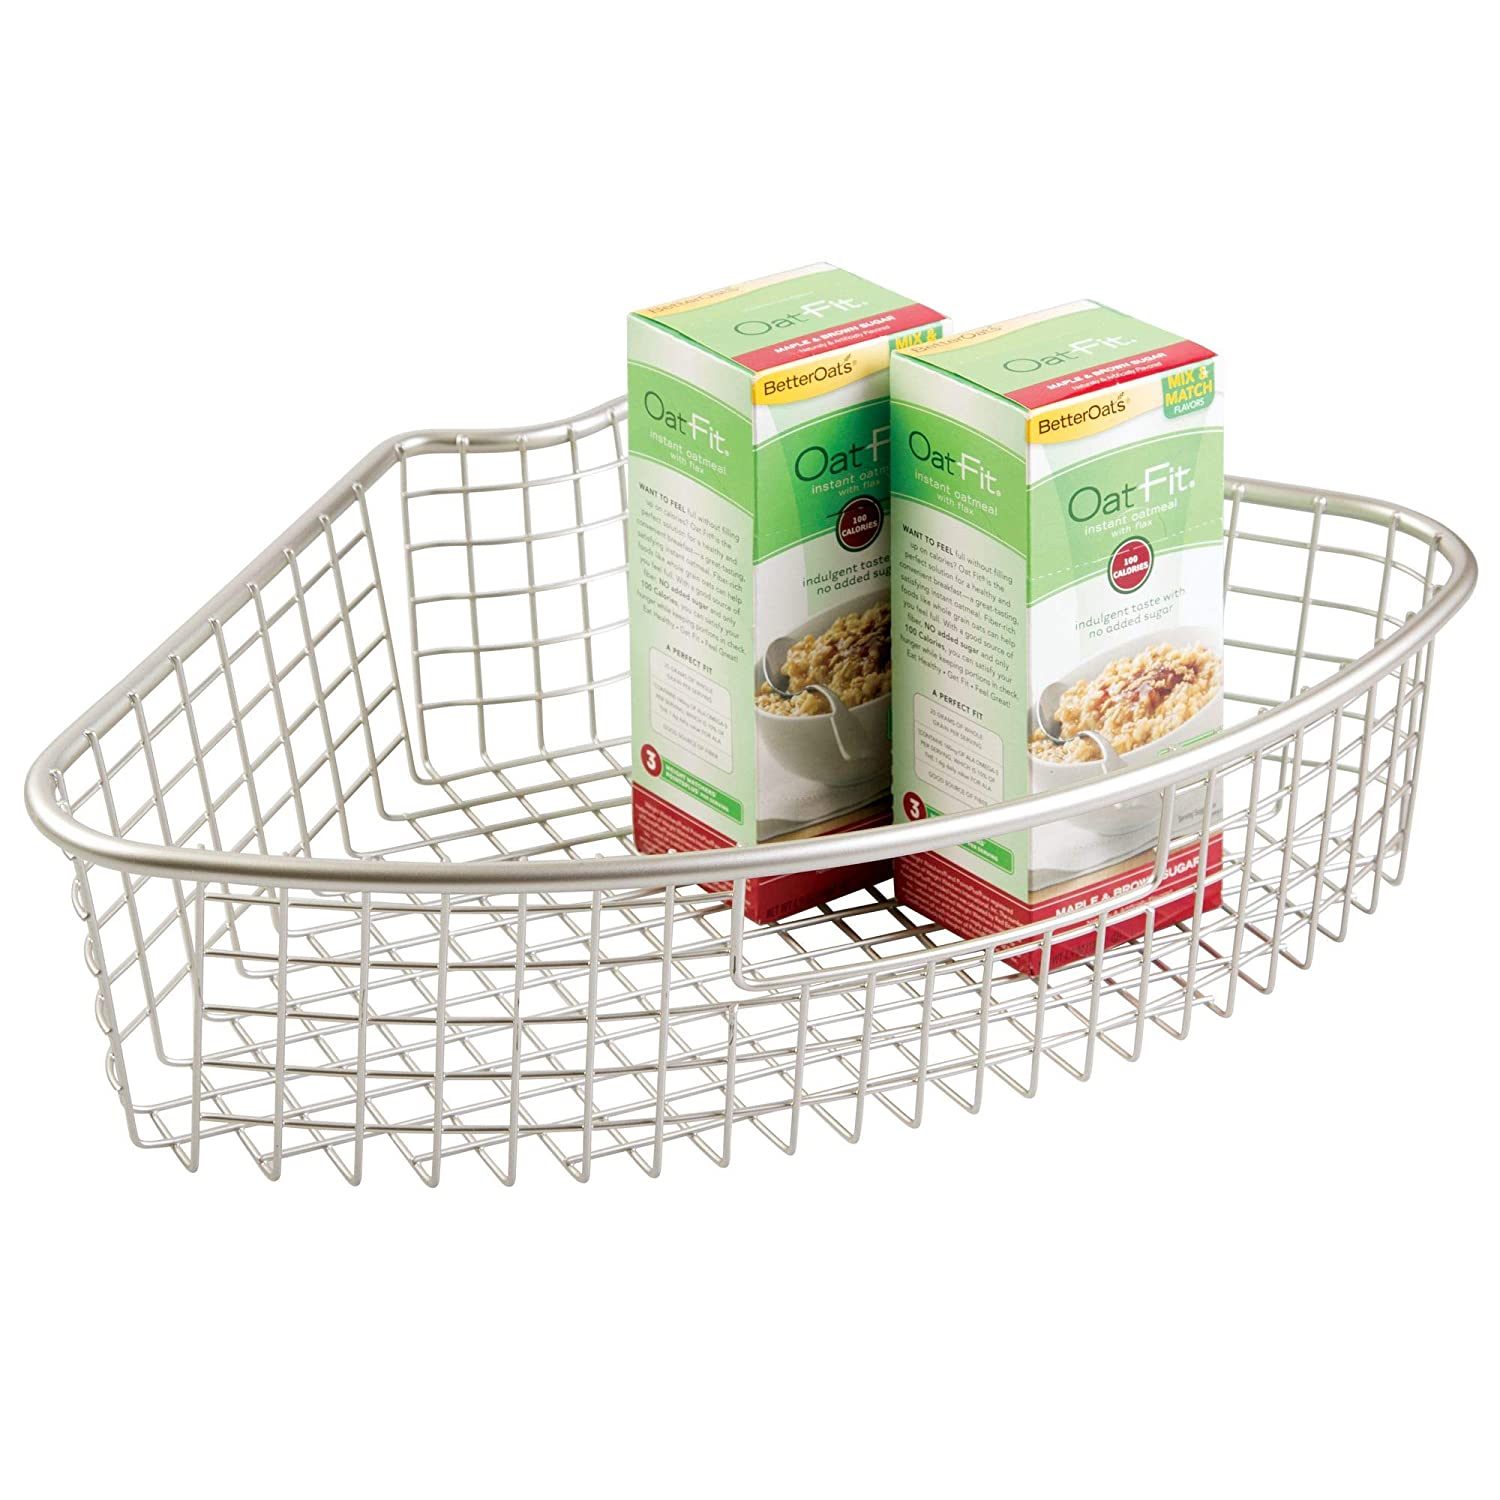 InterDesign Forma Lazy Susan Storage Basket with Handle – Organizer for Pantry or Kitchen Corner Cabinet Shelves - 1/4, Satin